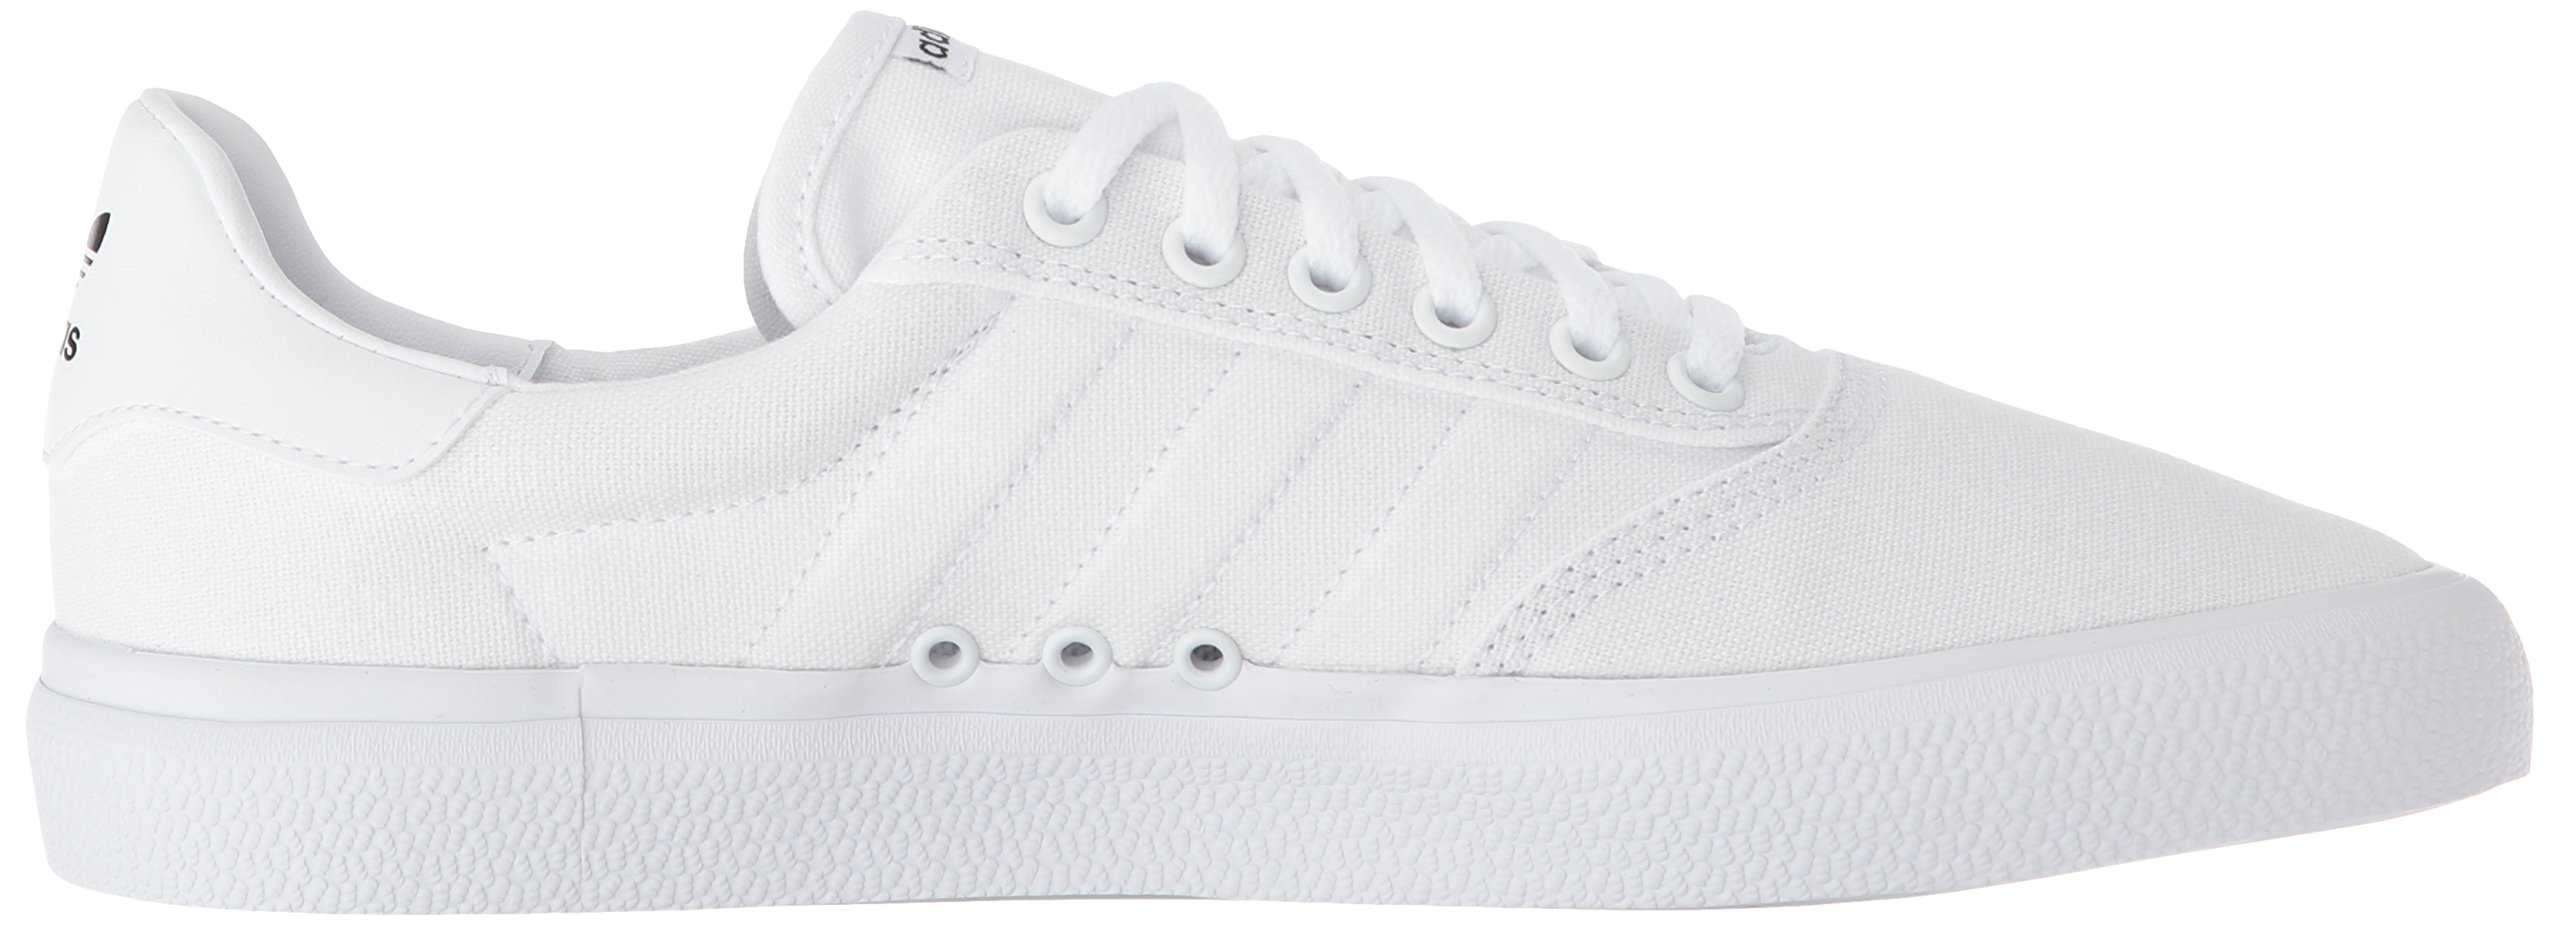 adidas Originals Unisex-adult 3 MC Skate Shoe White/Gold Metallic, 5.5 M US by adidas Originals (Image #9)